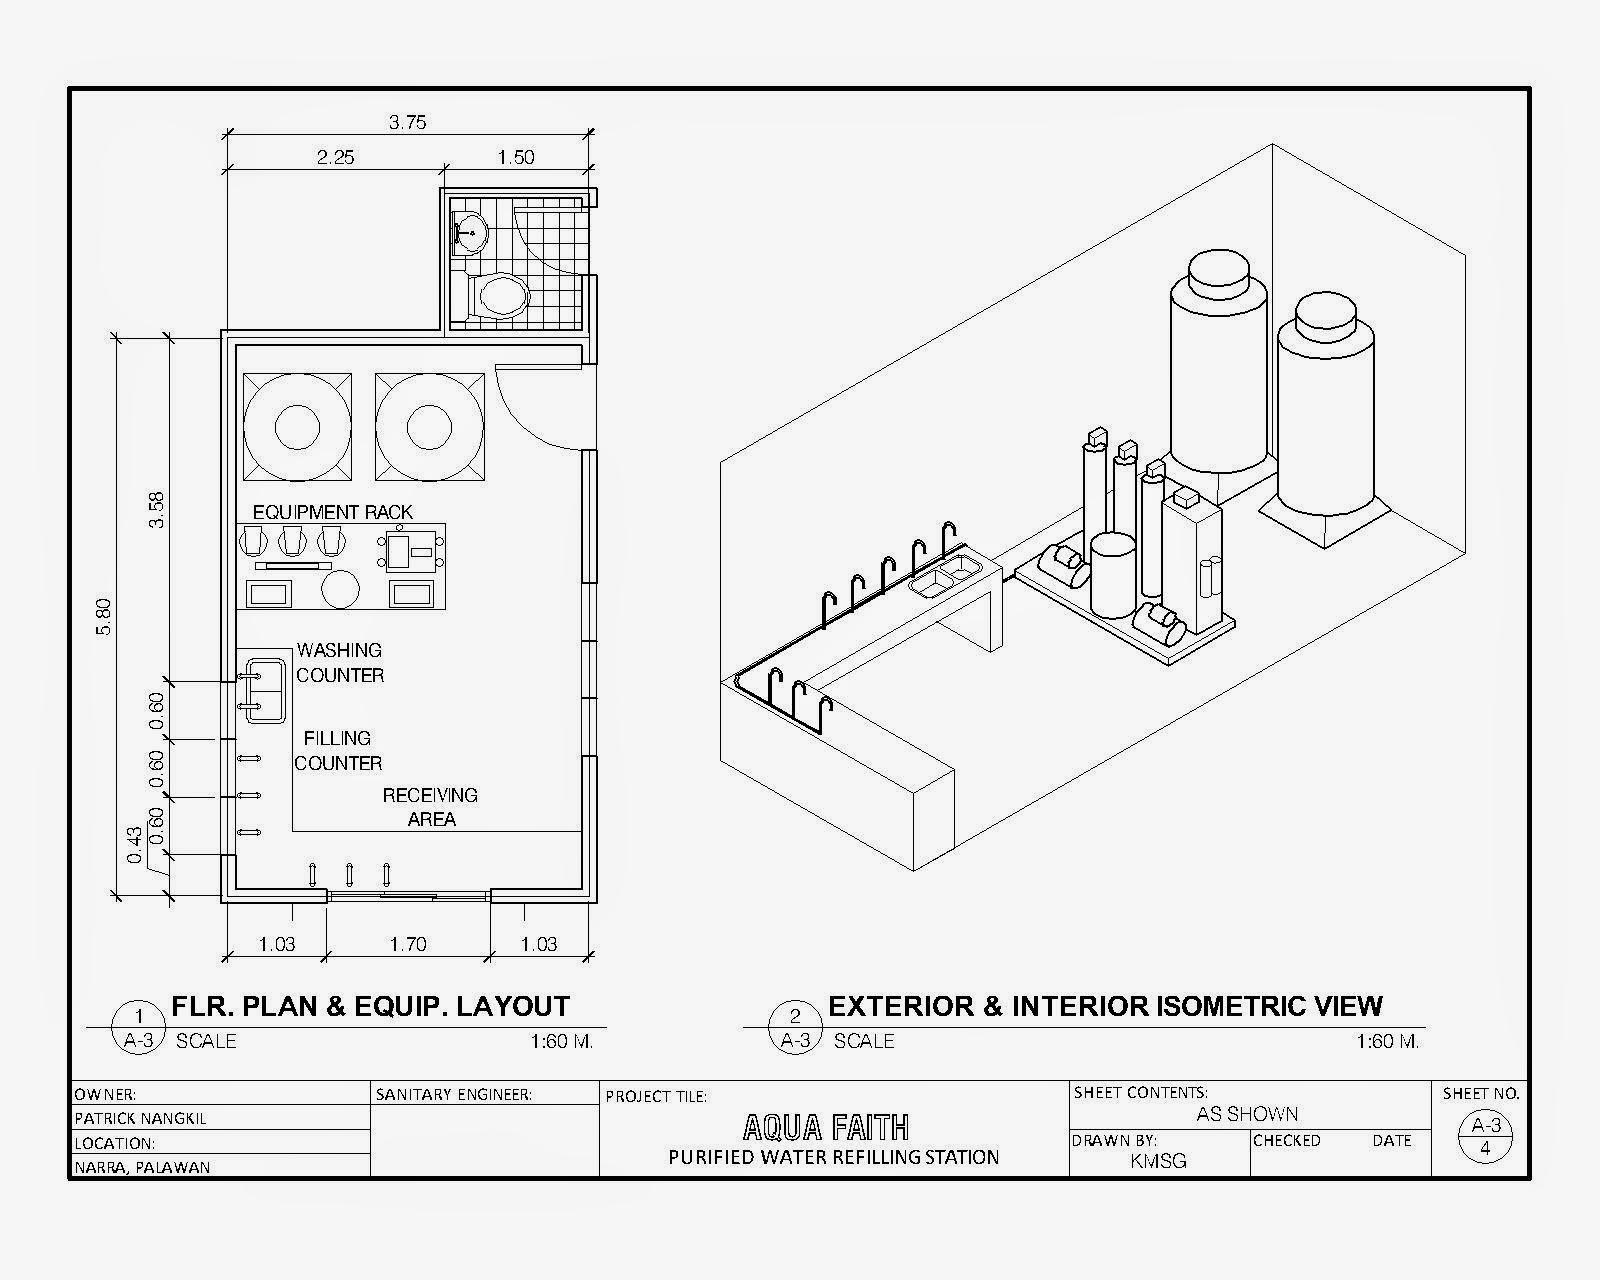 cad sample  water refilling station